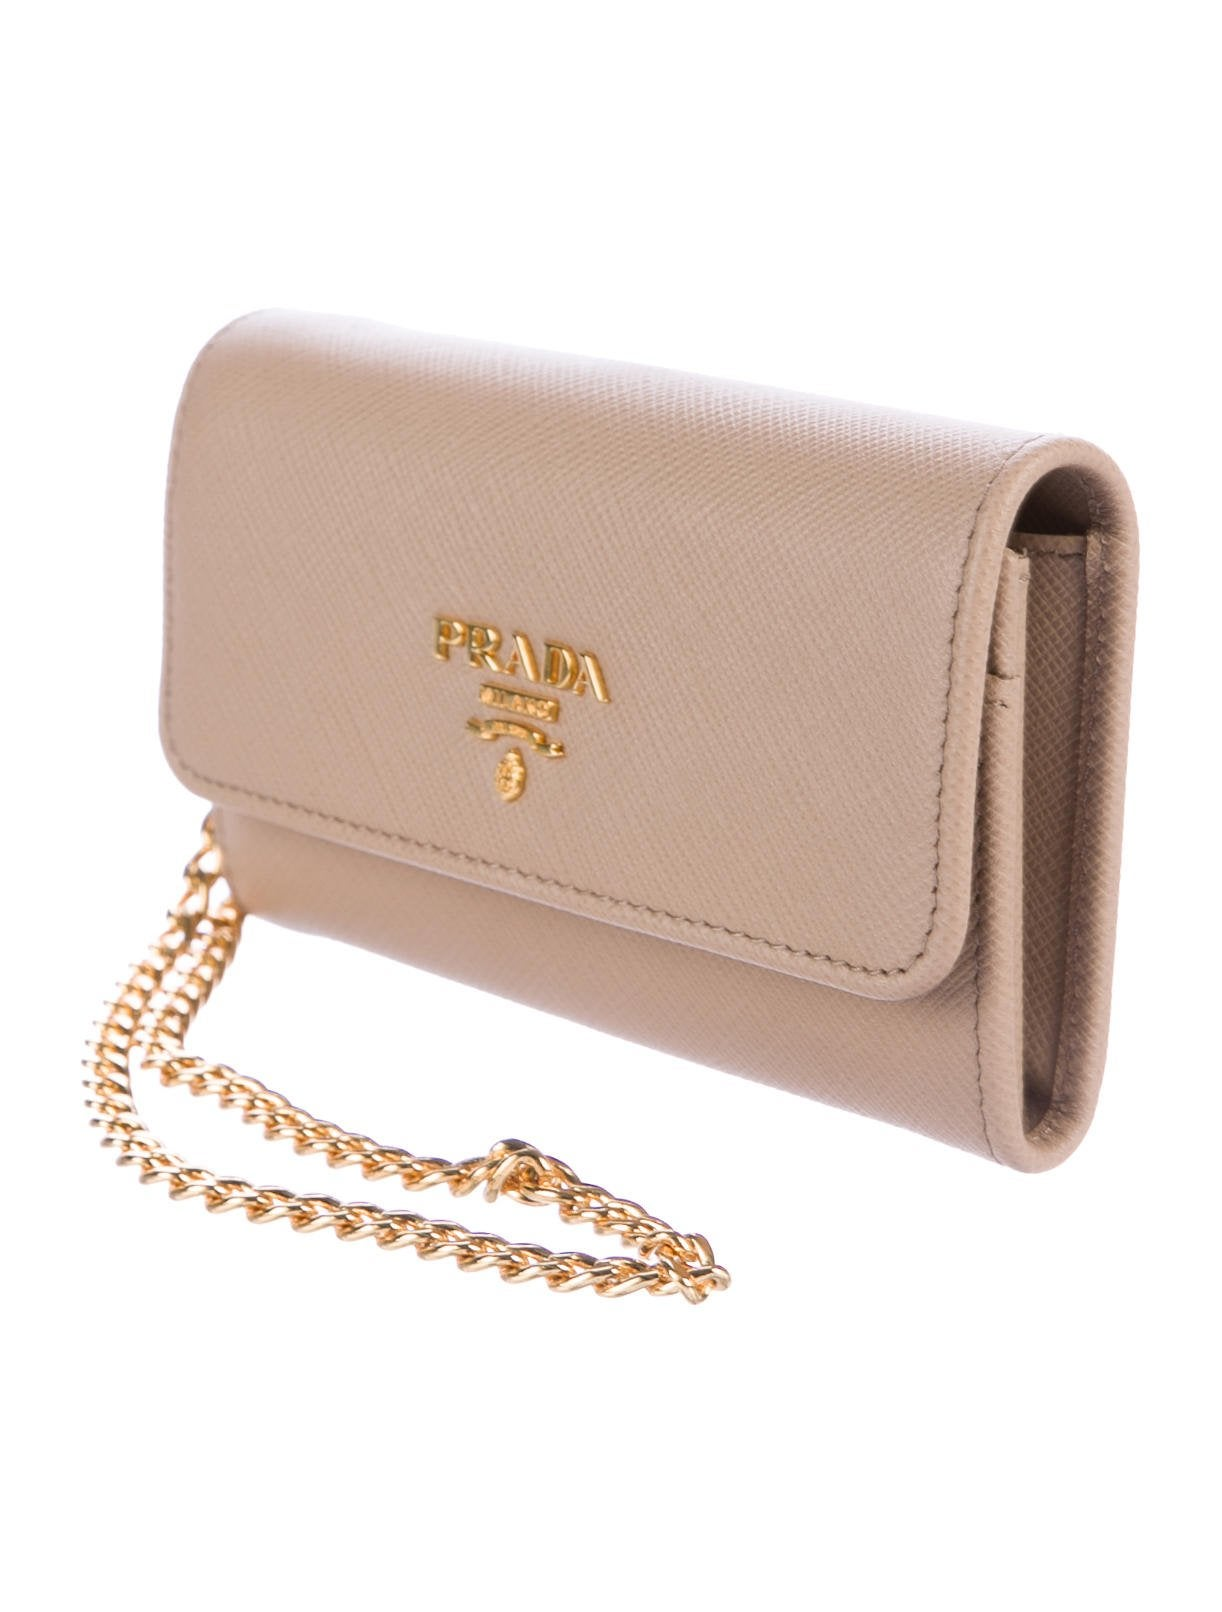 a69c7d9fe21c83 Prada New Nude Leather Gold 2 in 1 Wallet on Chain WOC Clutch Flap Bag in  Box at 1stdibs